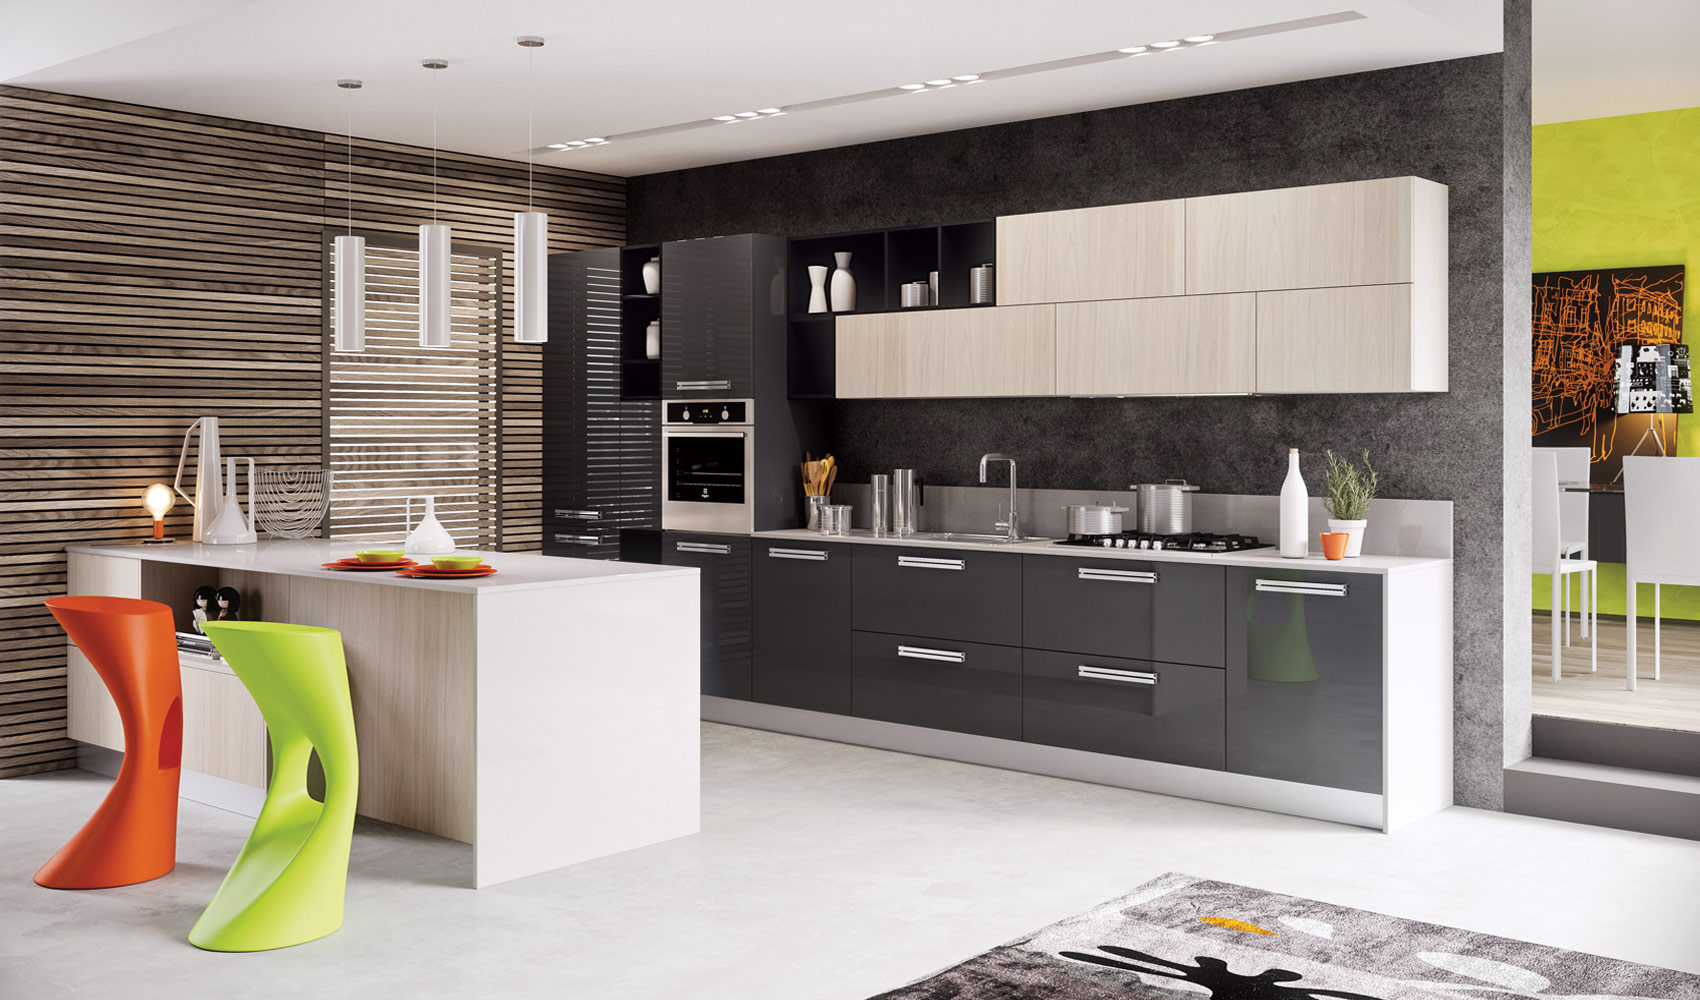 Contemporary kitchen design interior design ideas Modern kitchen design trends 2014